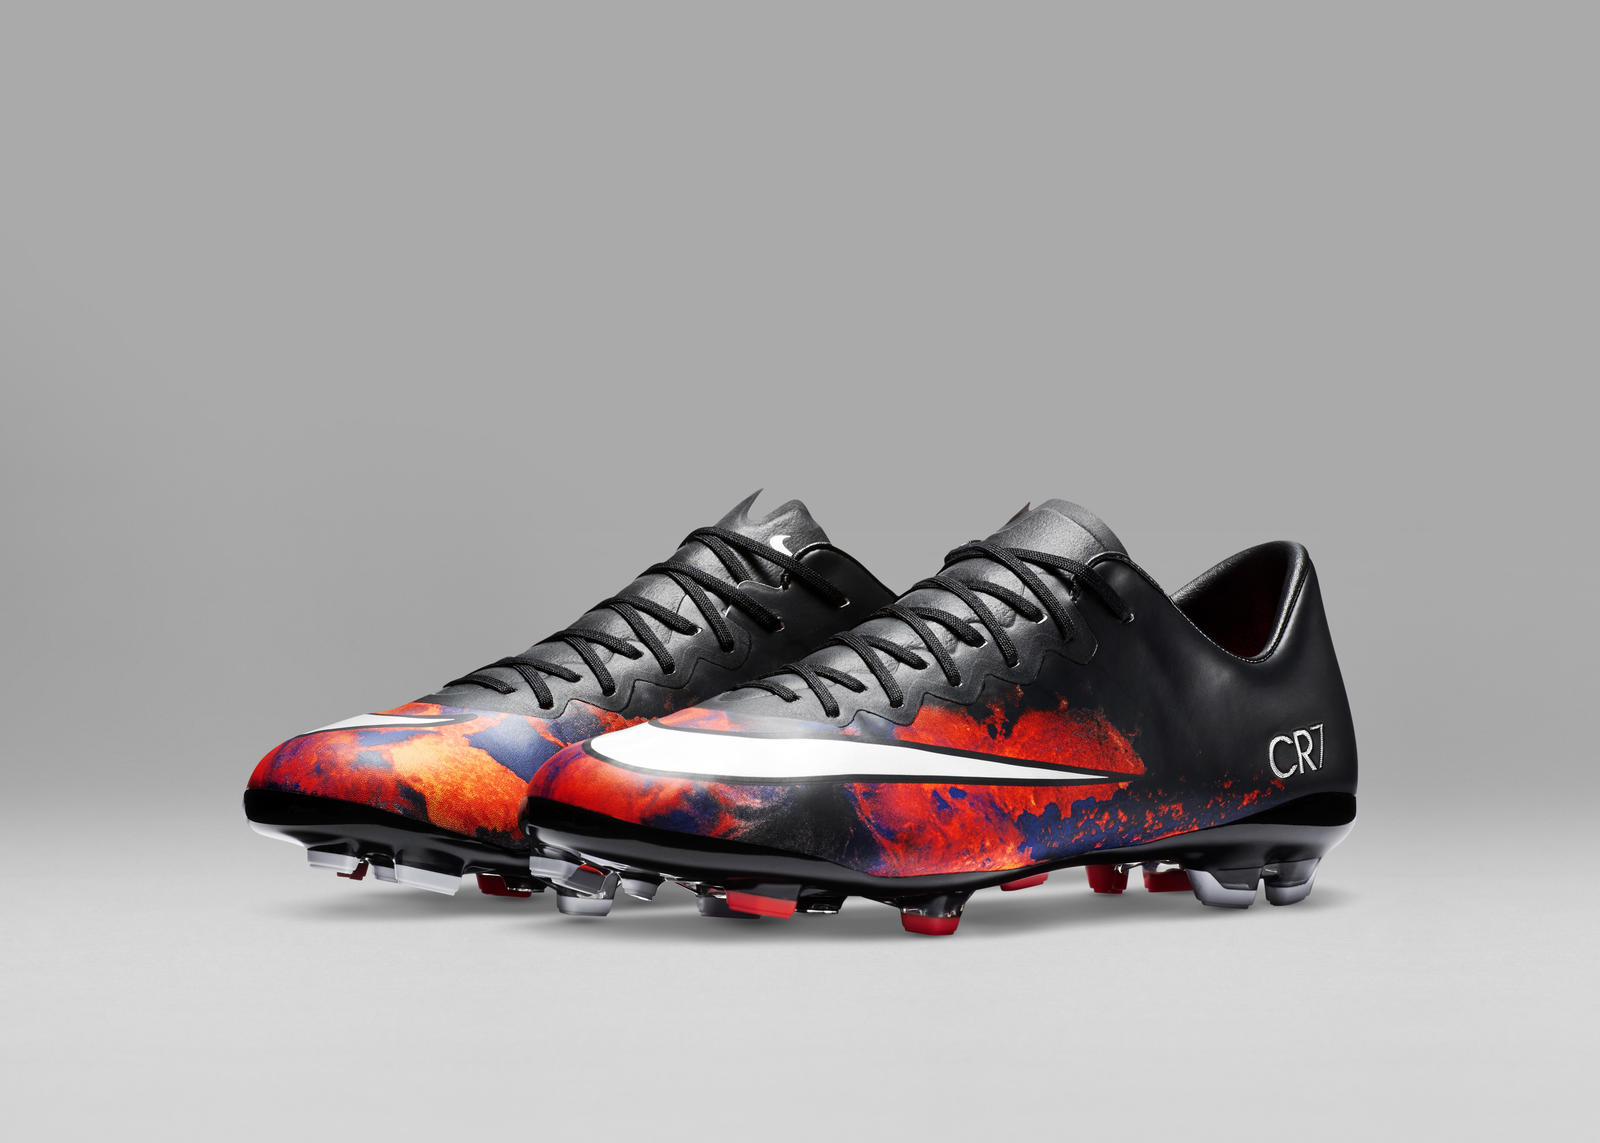 7dd48afc677 CR7 Chapter I  Savage Beauty - Nike News